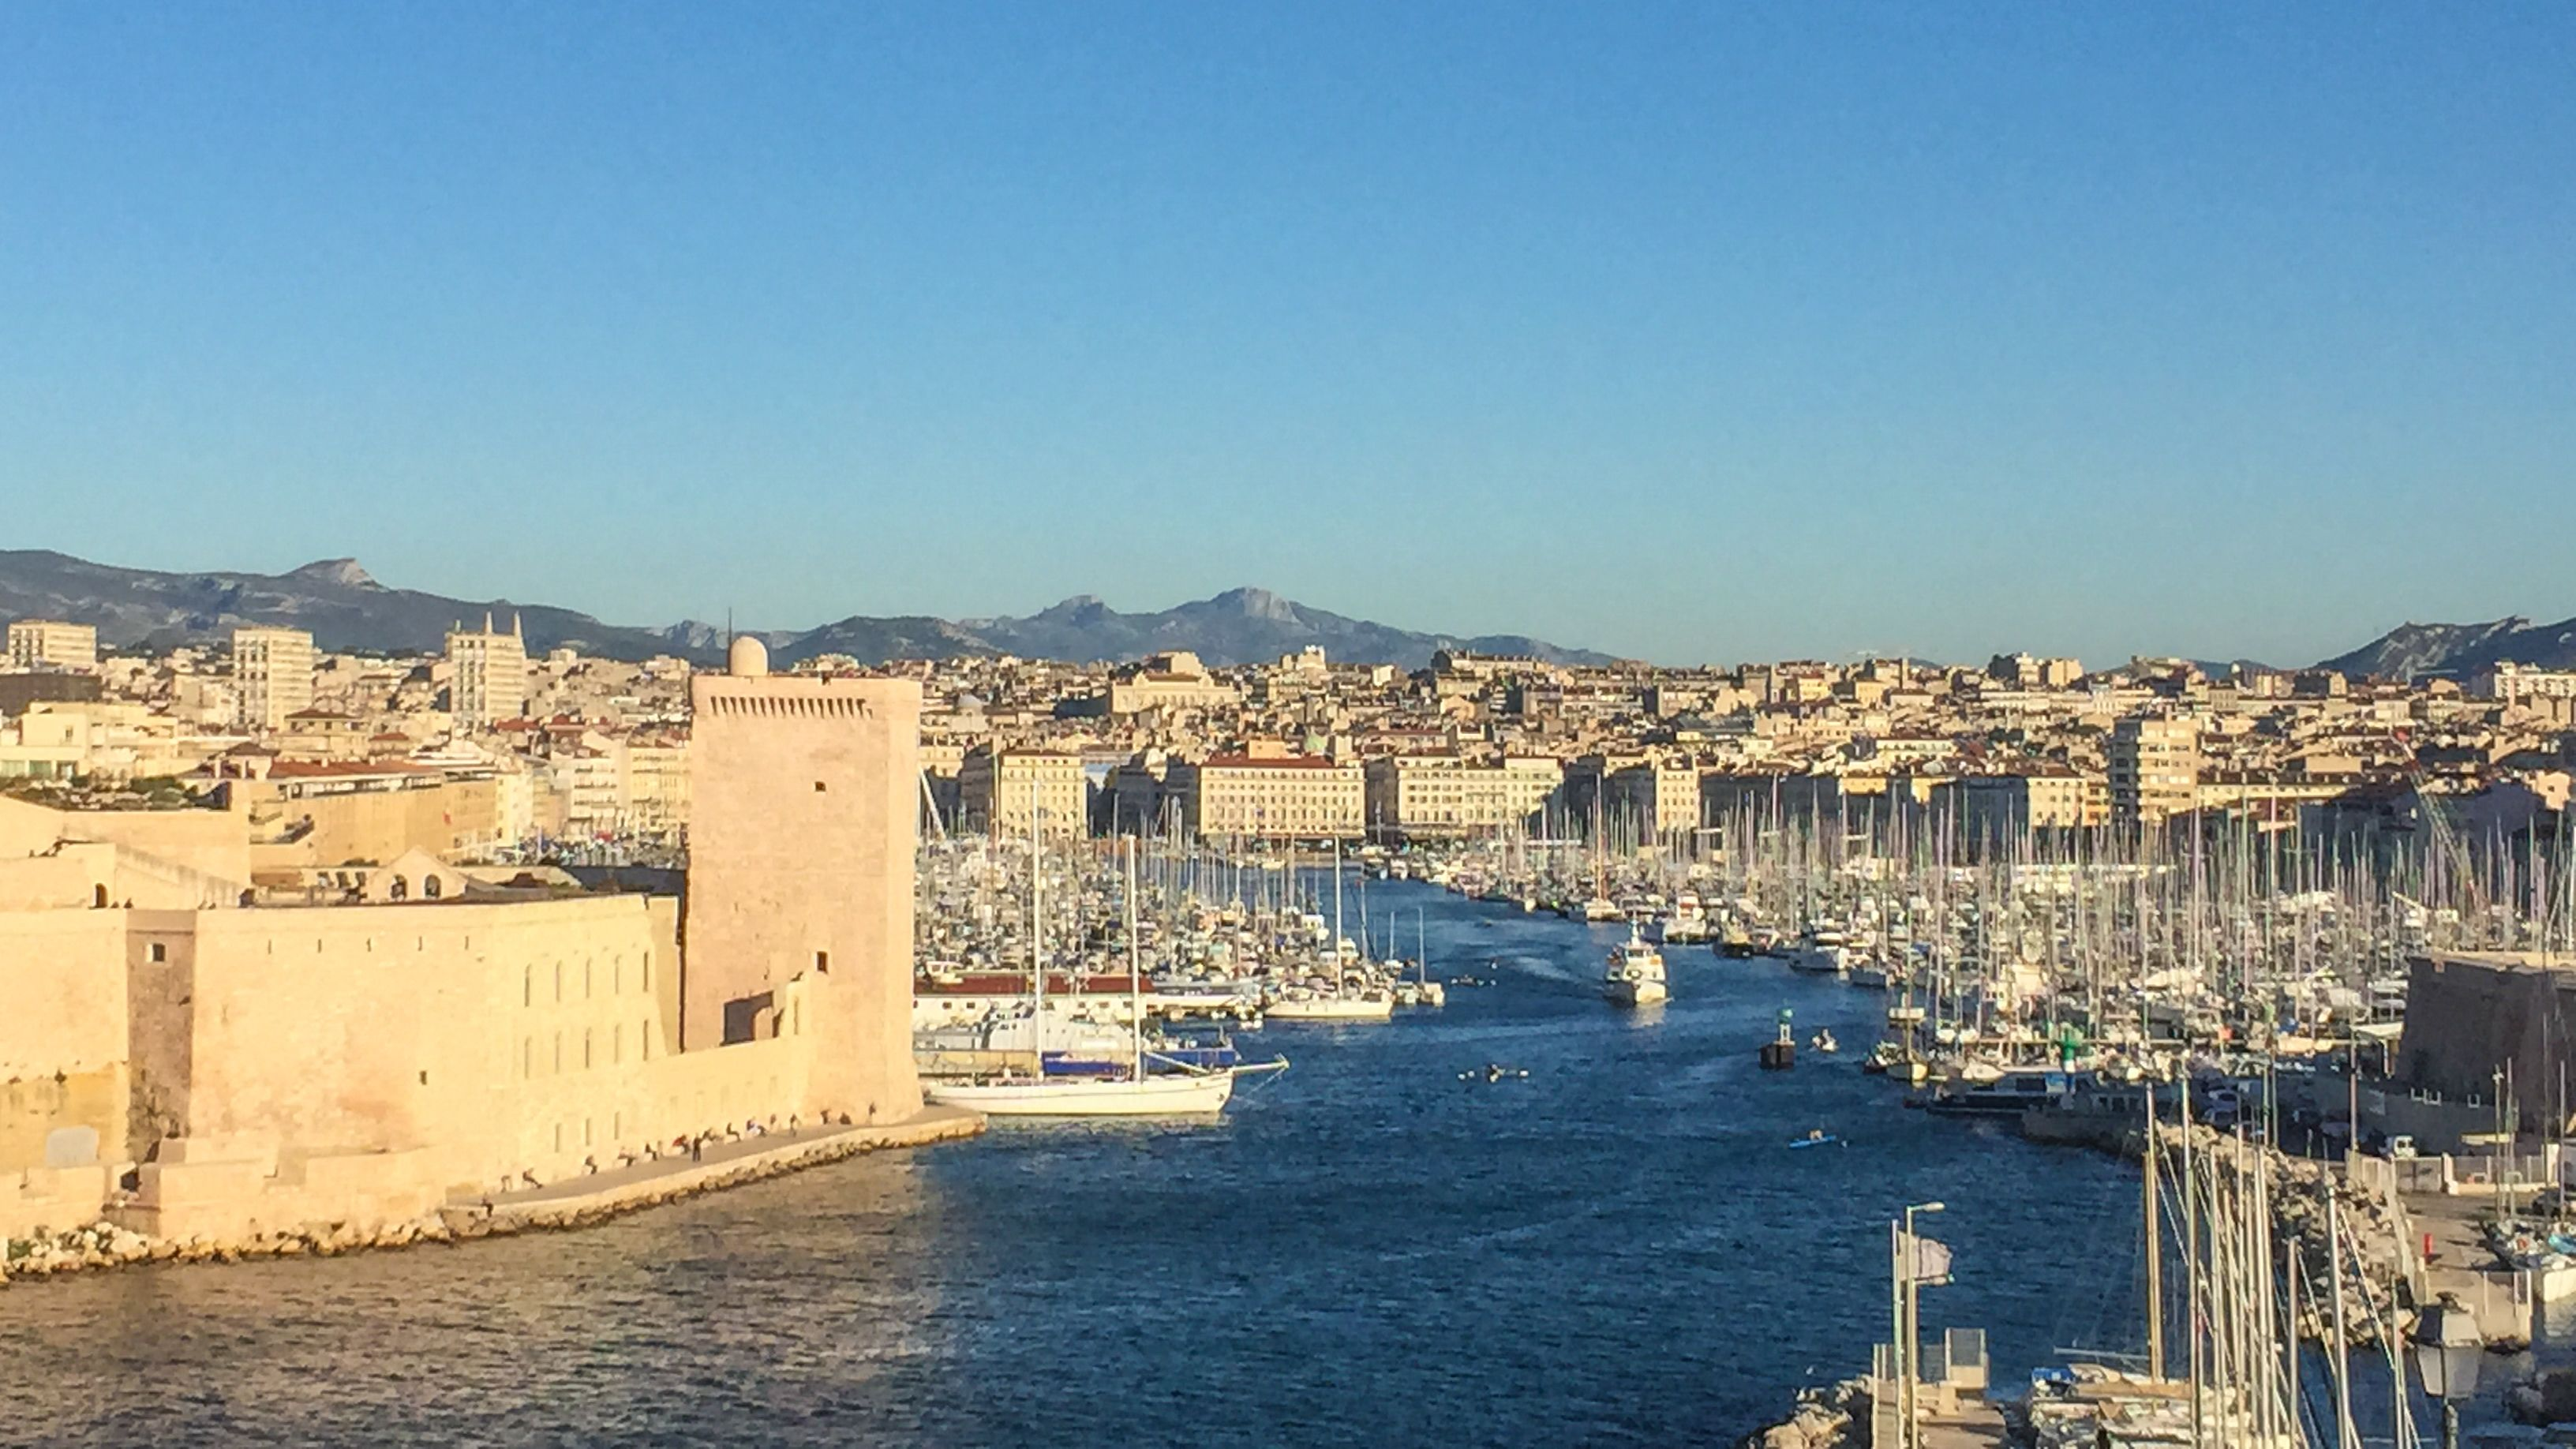 Aerial view of Marseille during the day.